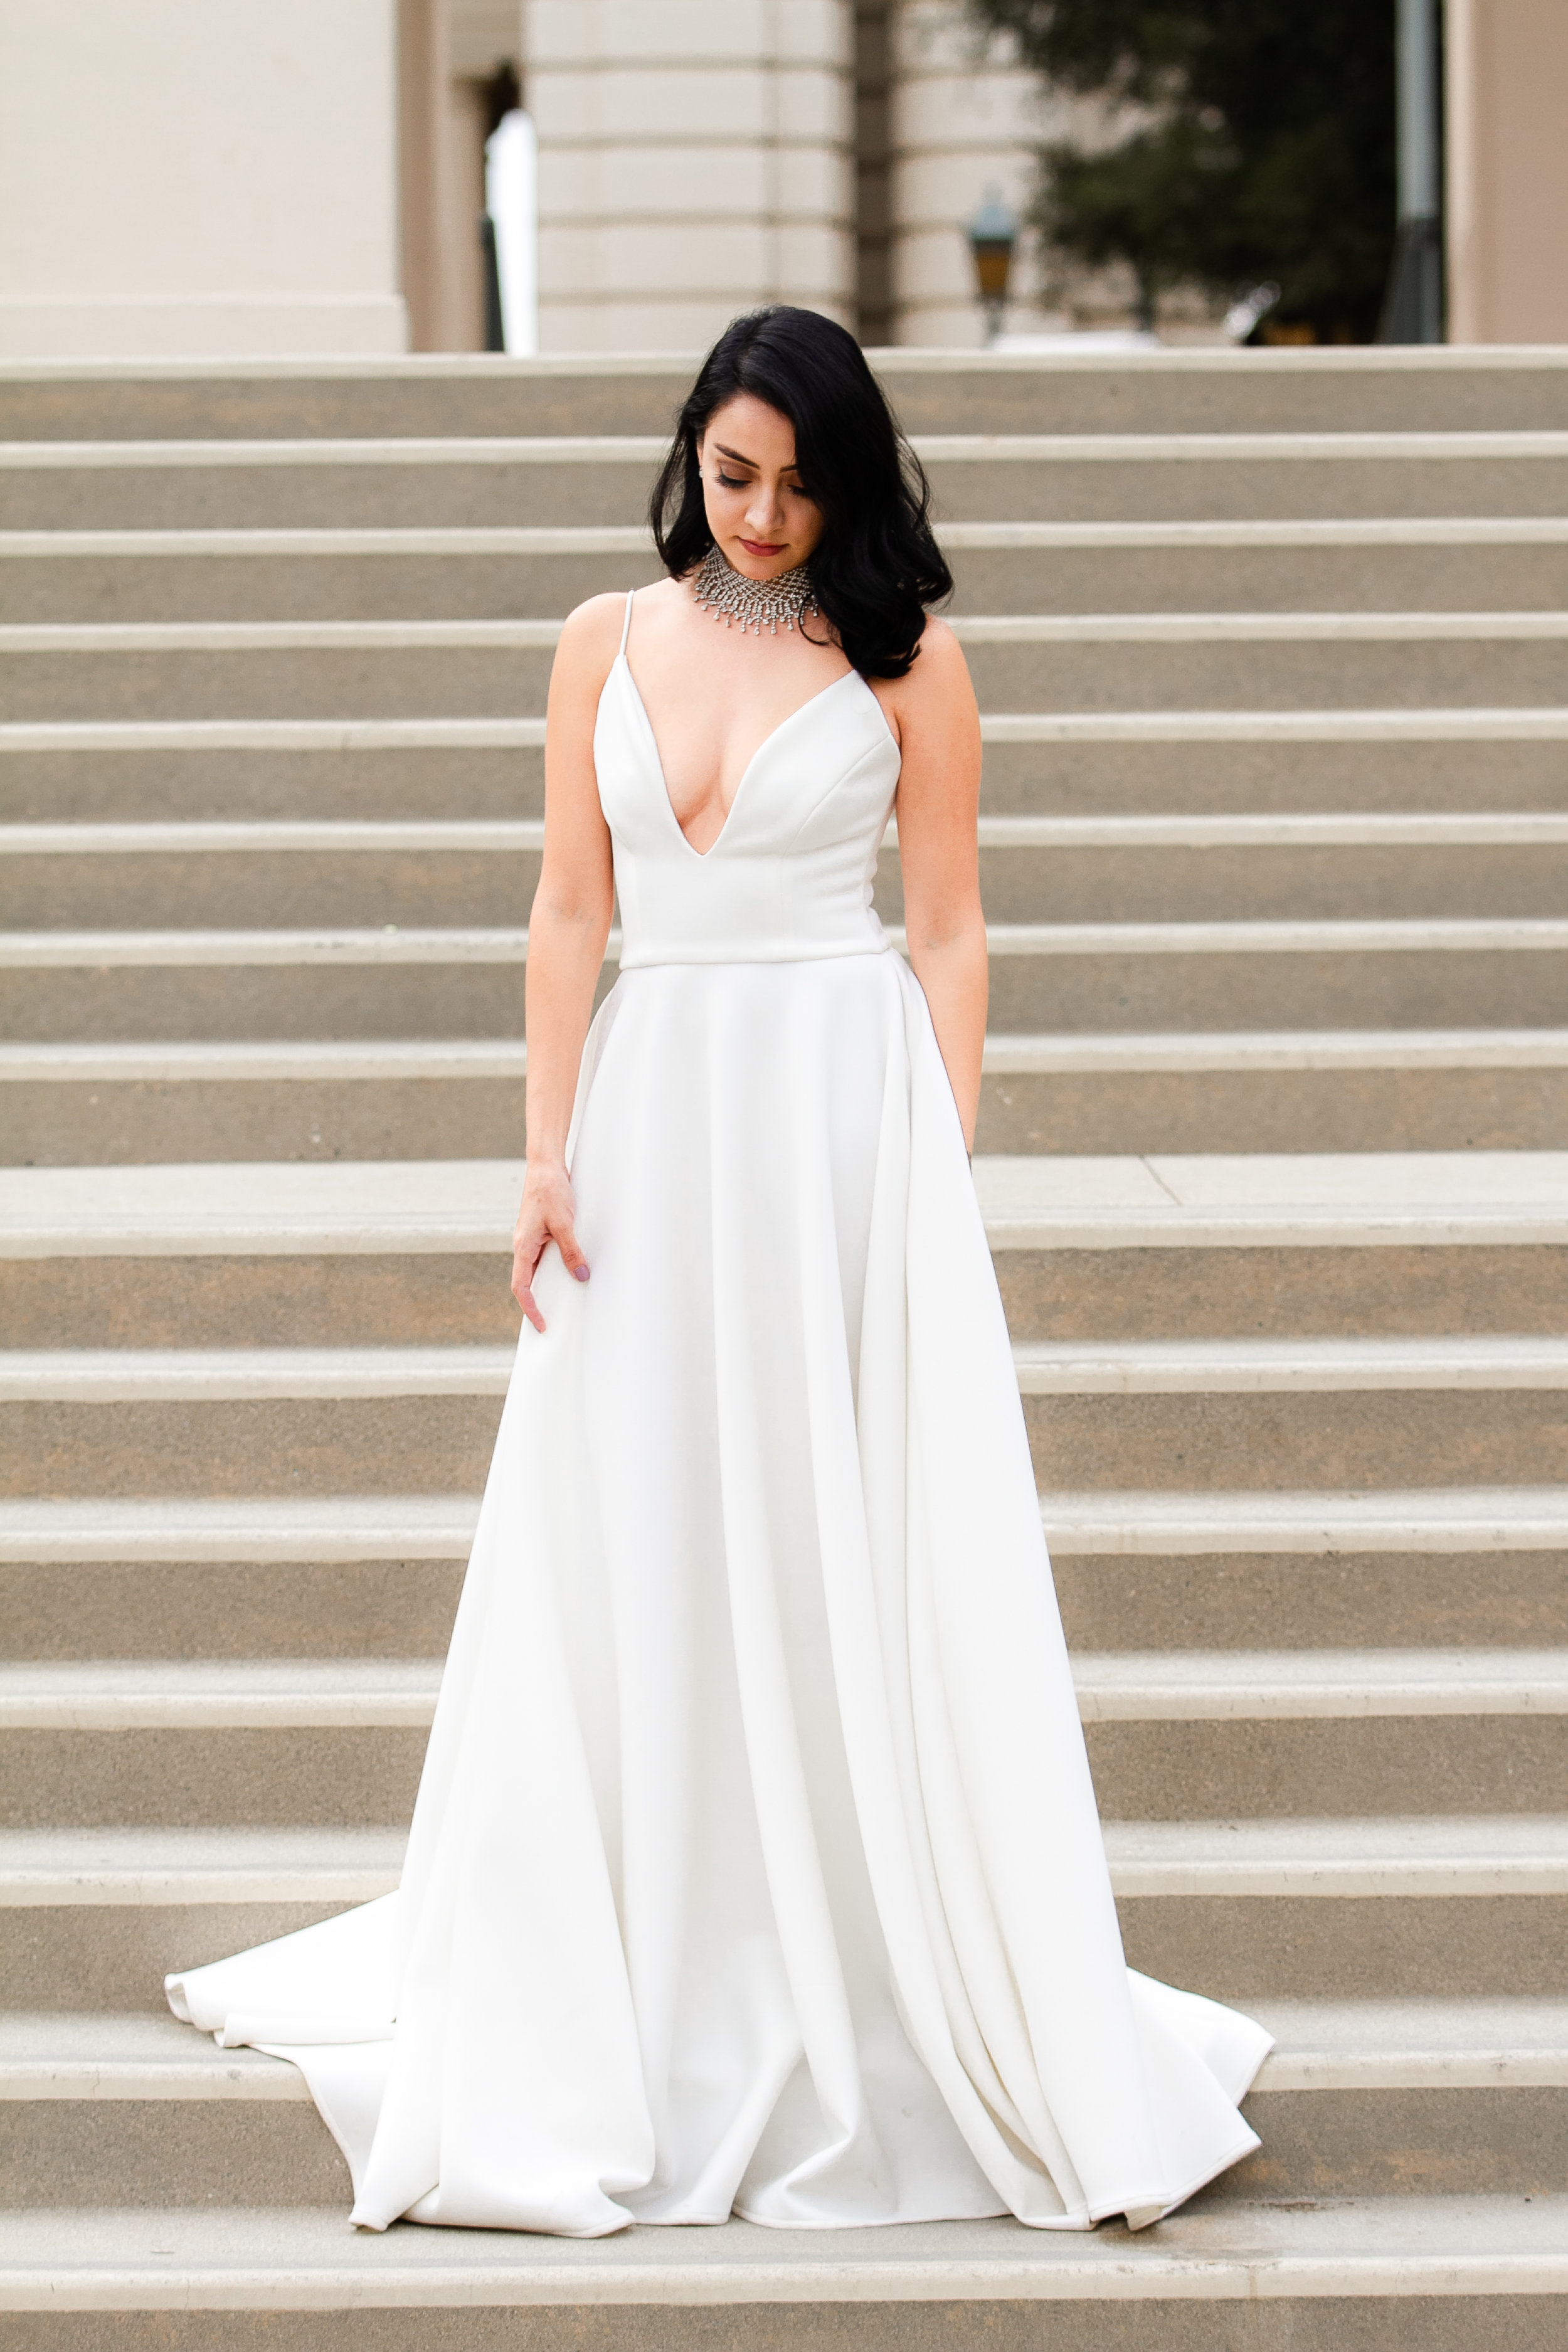 Cristina: I chose the  Evita dress , which is a simple and contemporary design. The top is structured with a plunging neckline and the back cuts into a low V shape. What really makes this dress special is the floor length skirt that gives you a beautiful feminine silhouette.